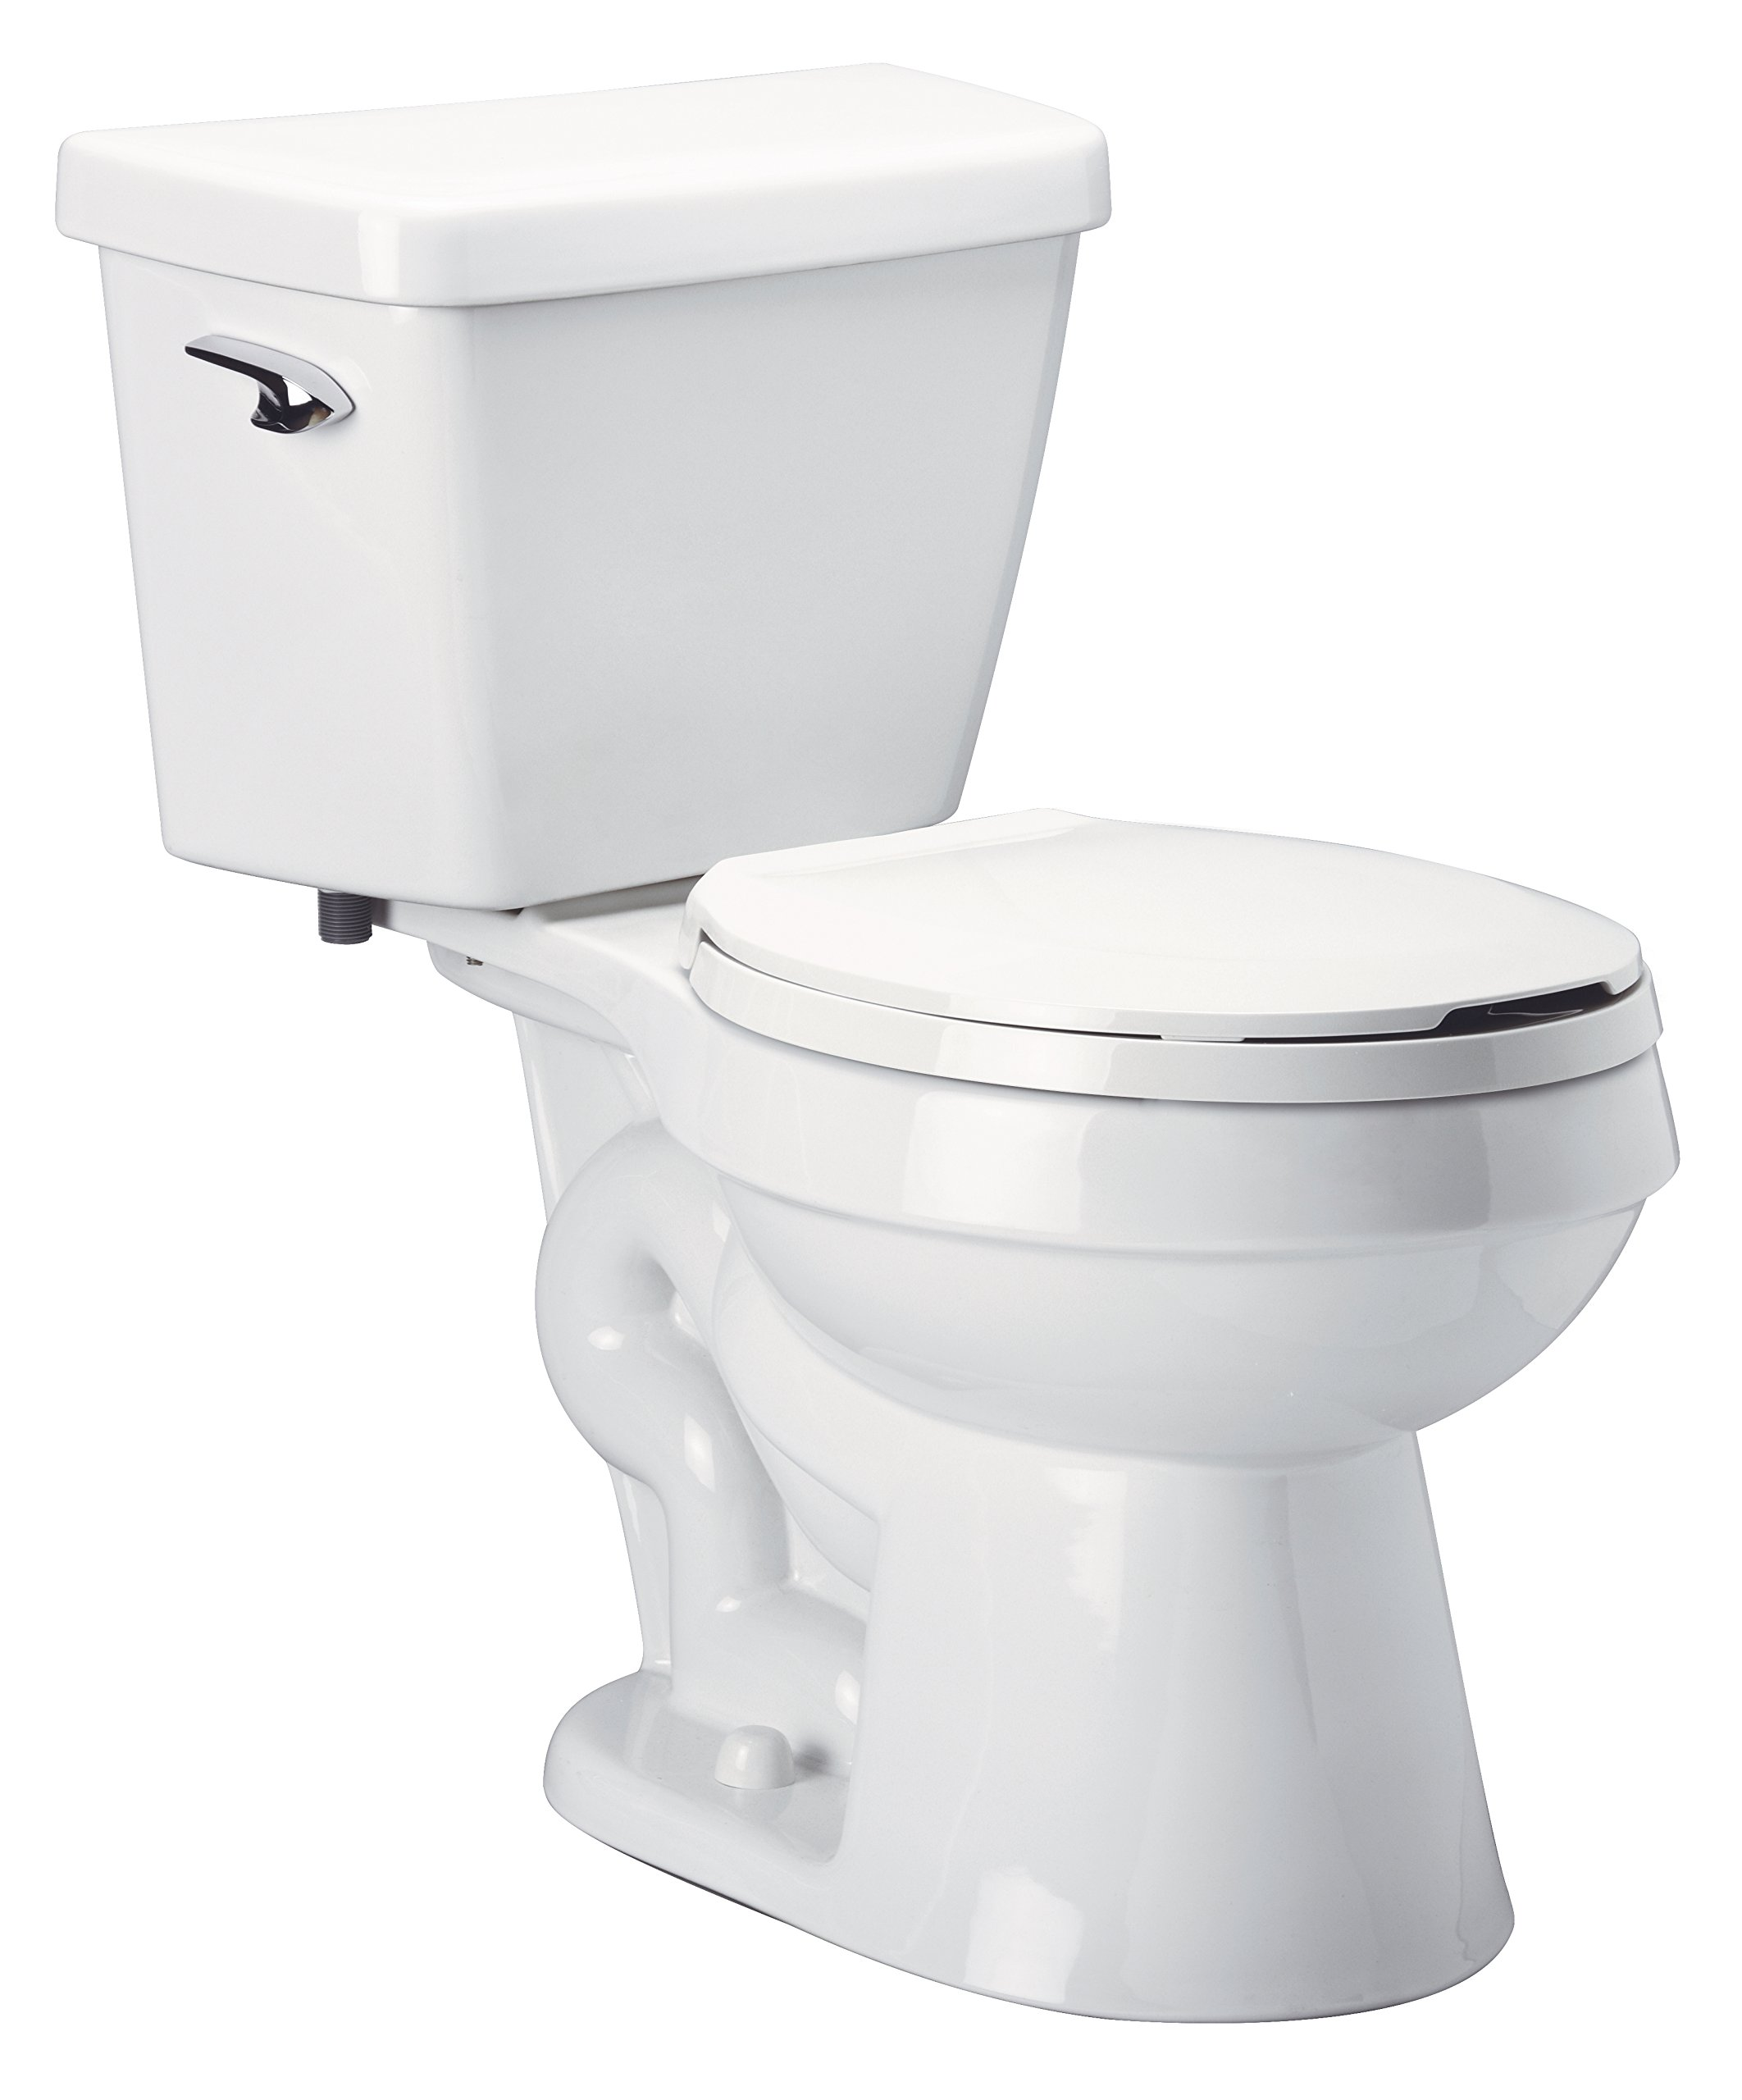 Zurn Z5545 EcoVantage 1.28 gpf, Round Front, High Efficiency Toilet - 3'' Gravity High Performance Siphon Jet